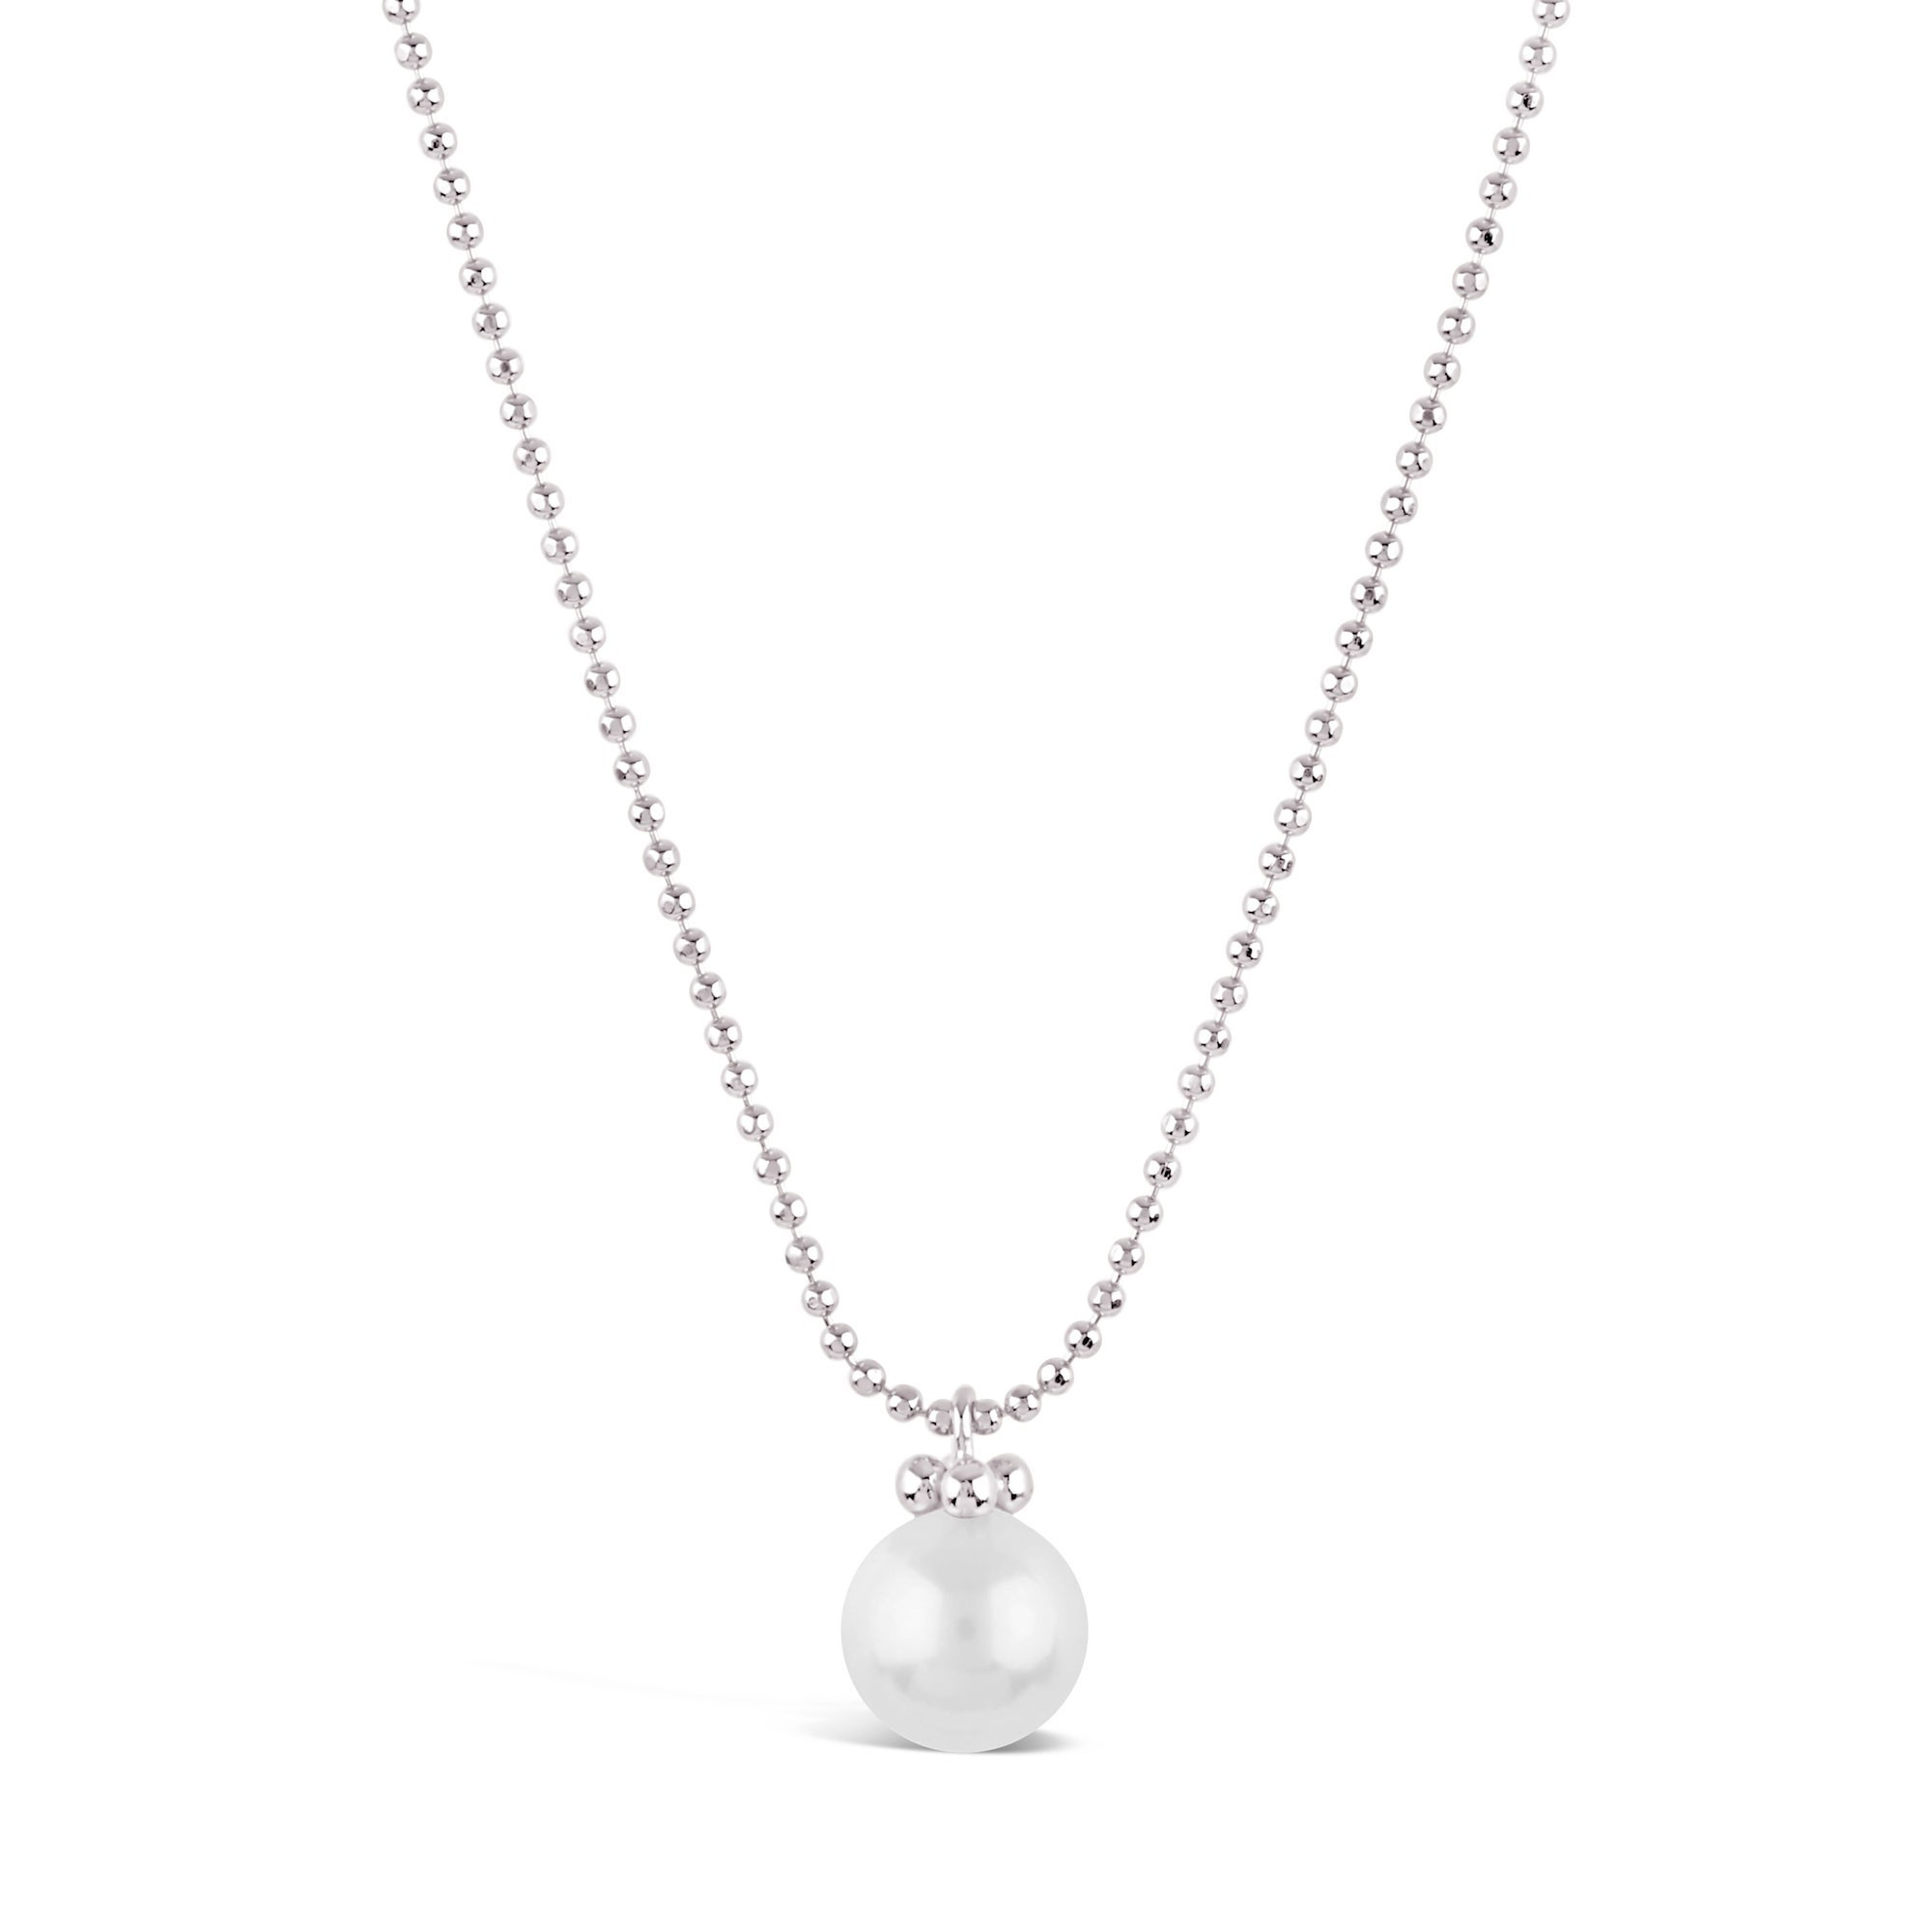 DINNY HALL SILVER PEARL PENDANT WITH FINE FACETED BALL CHAIN